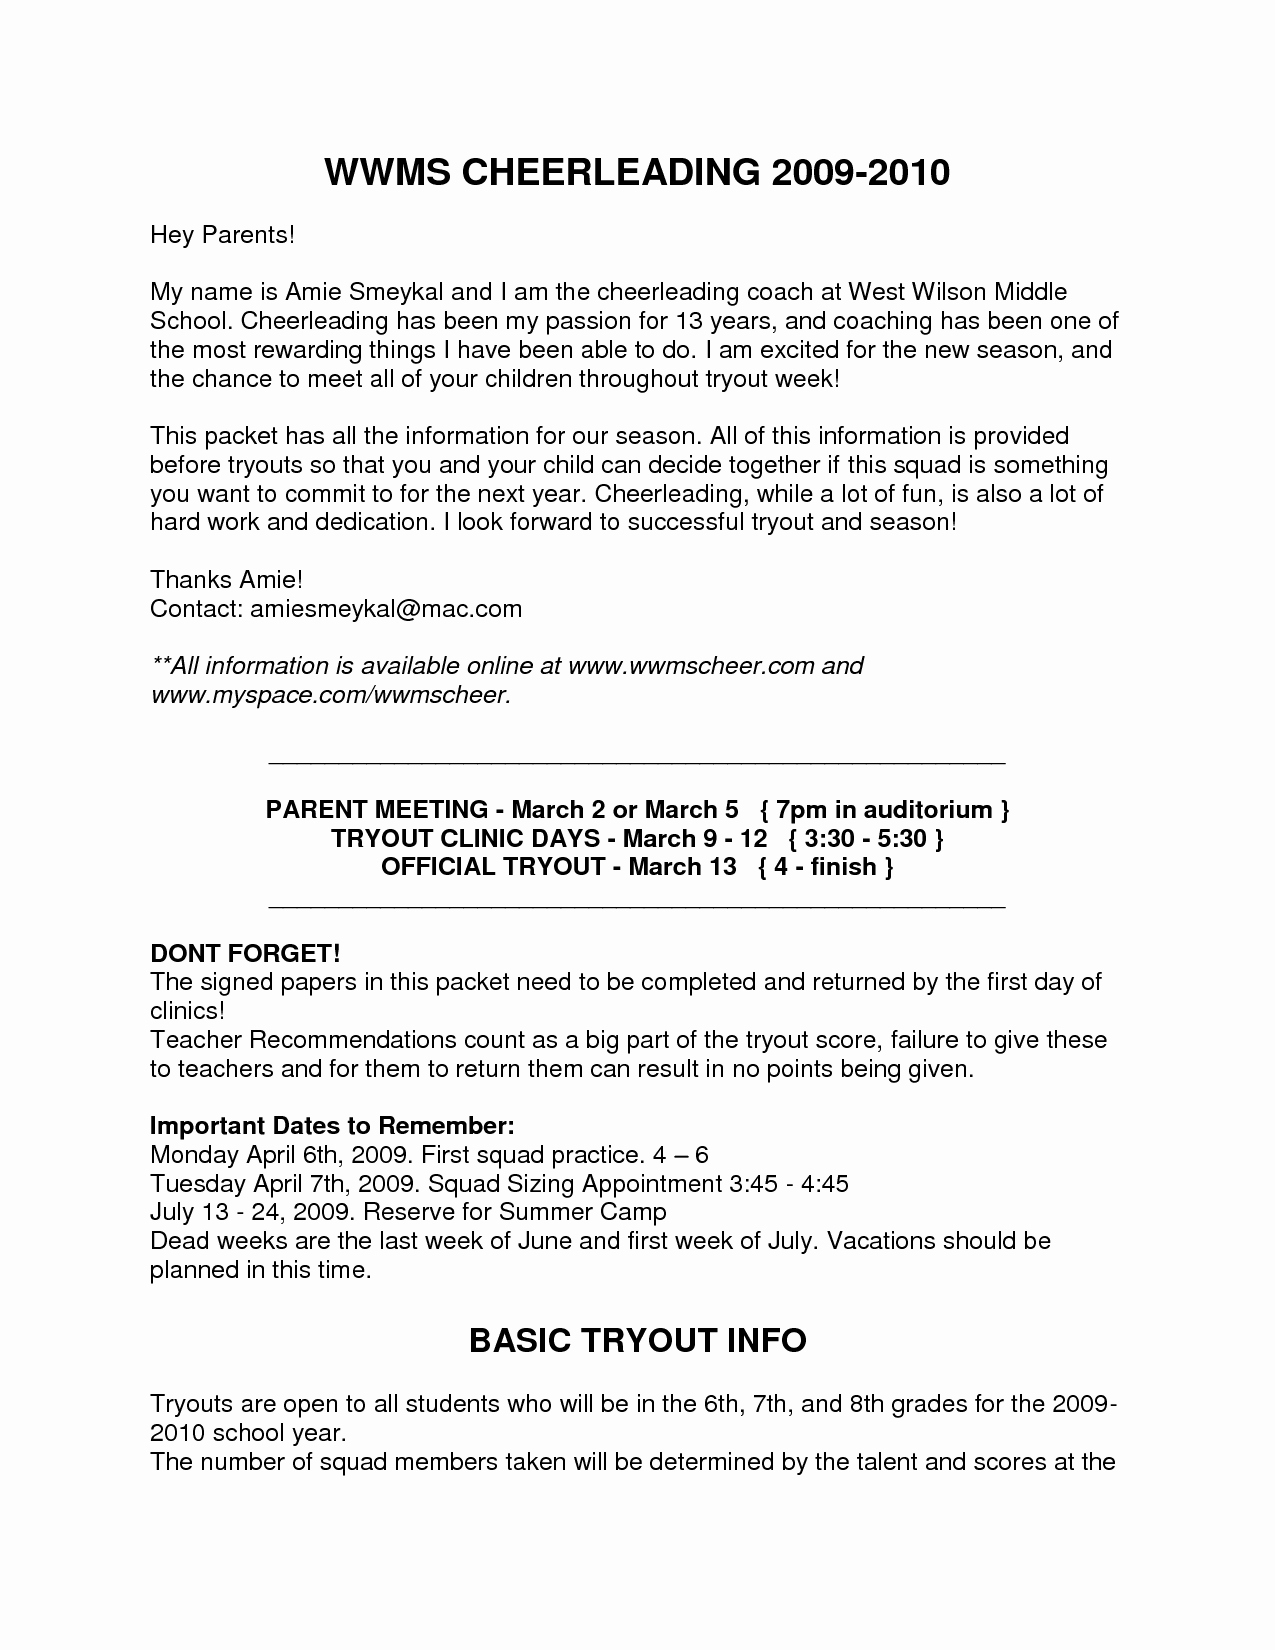 Summer Camp Letter to Parents Template - Middle School Teacher Cover Letter Samplest Year New soccer